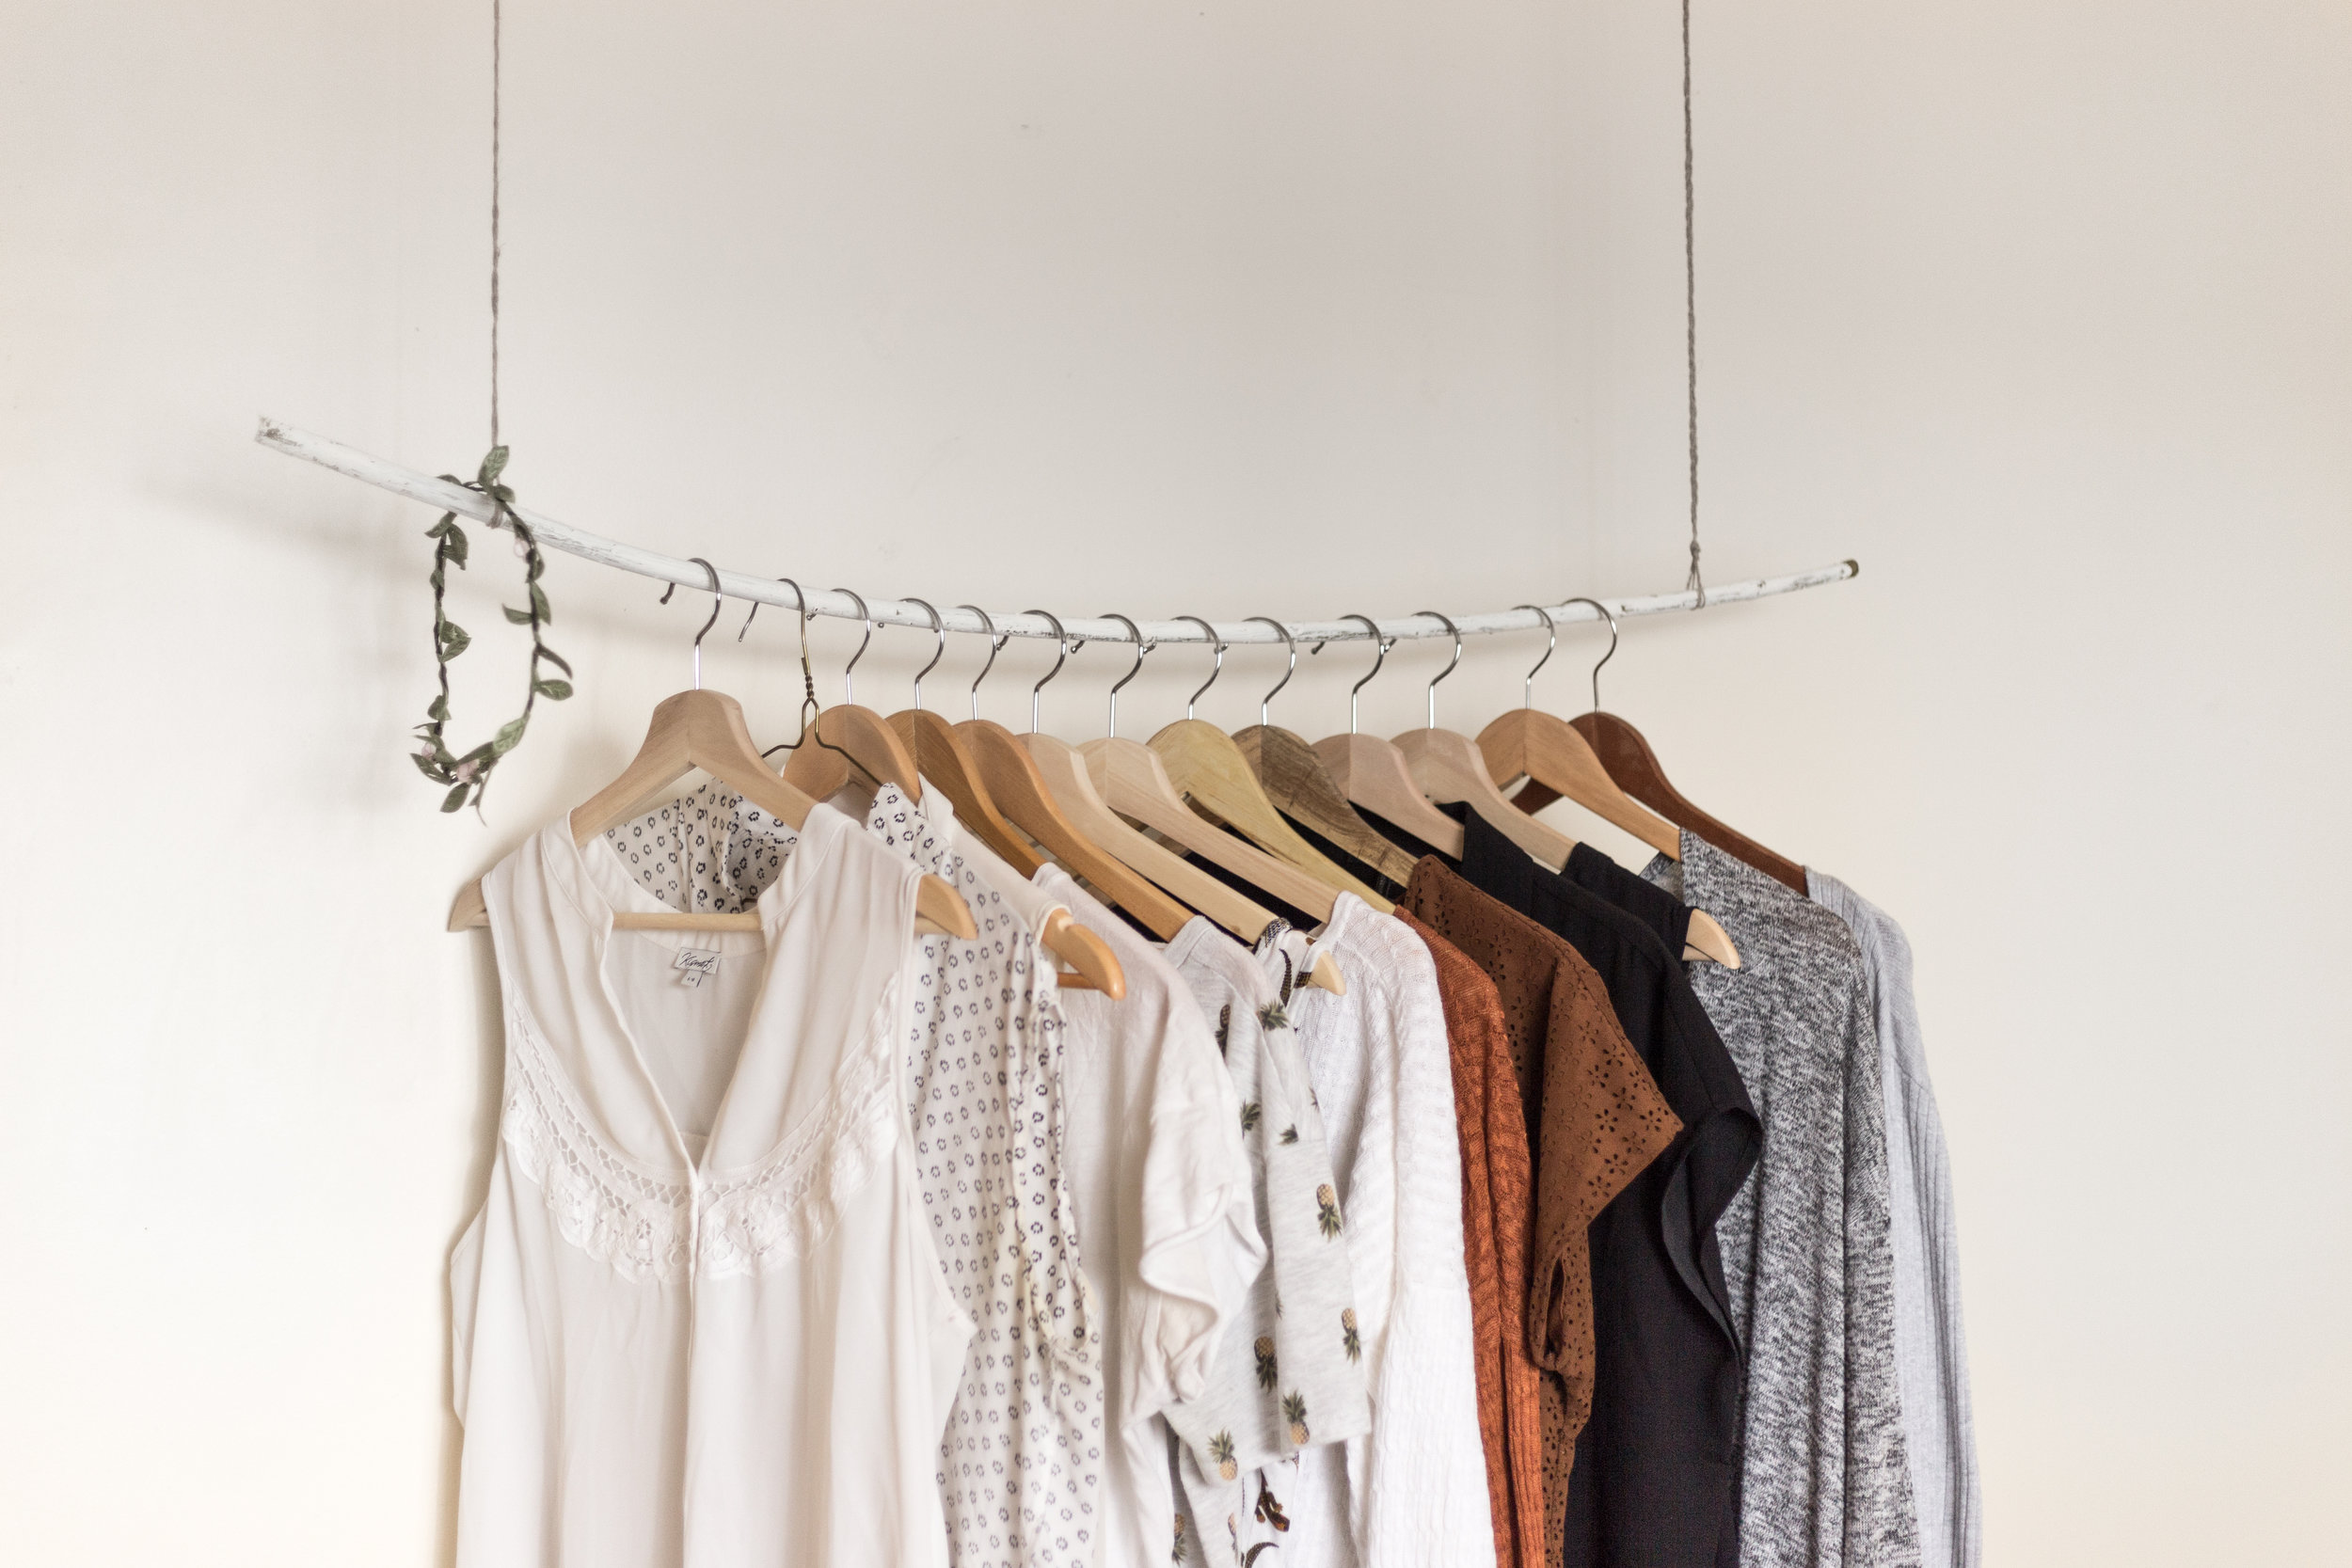 How To Do A Real Wardrobe/Closet Clear Out